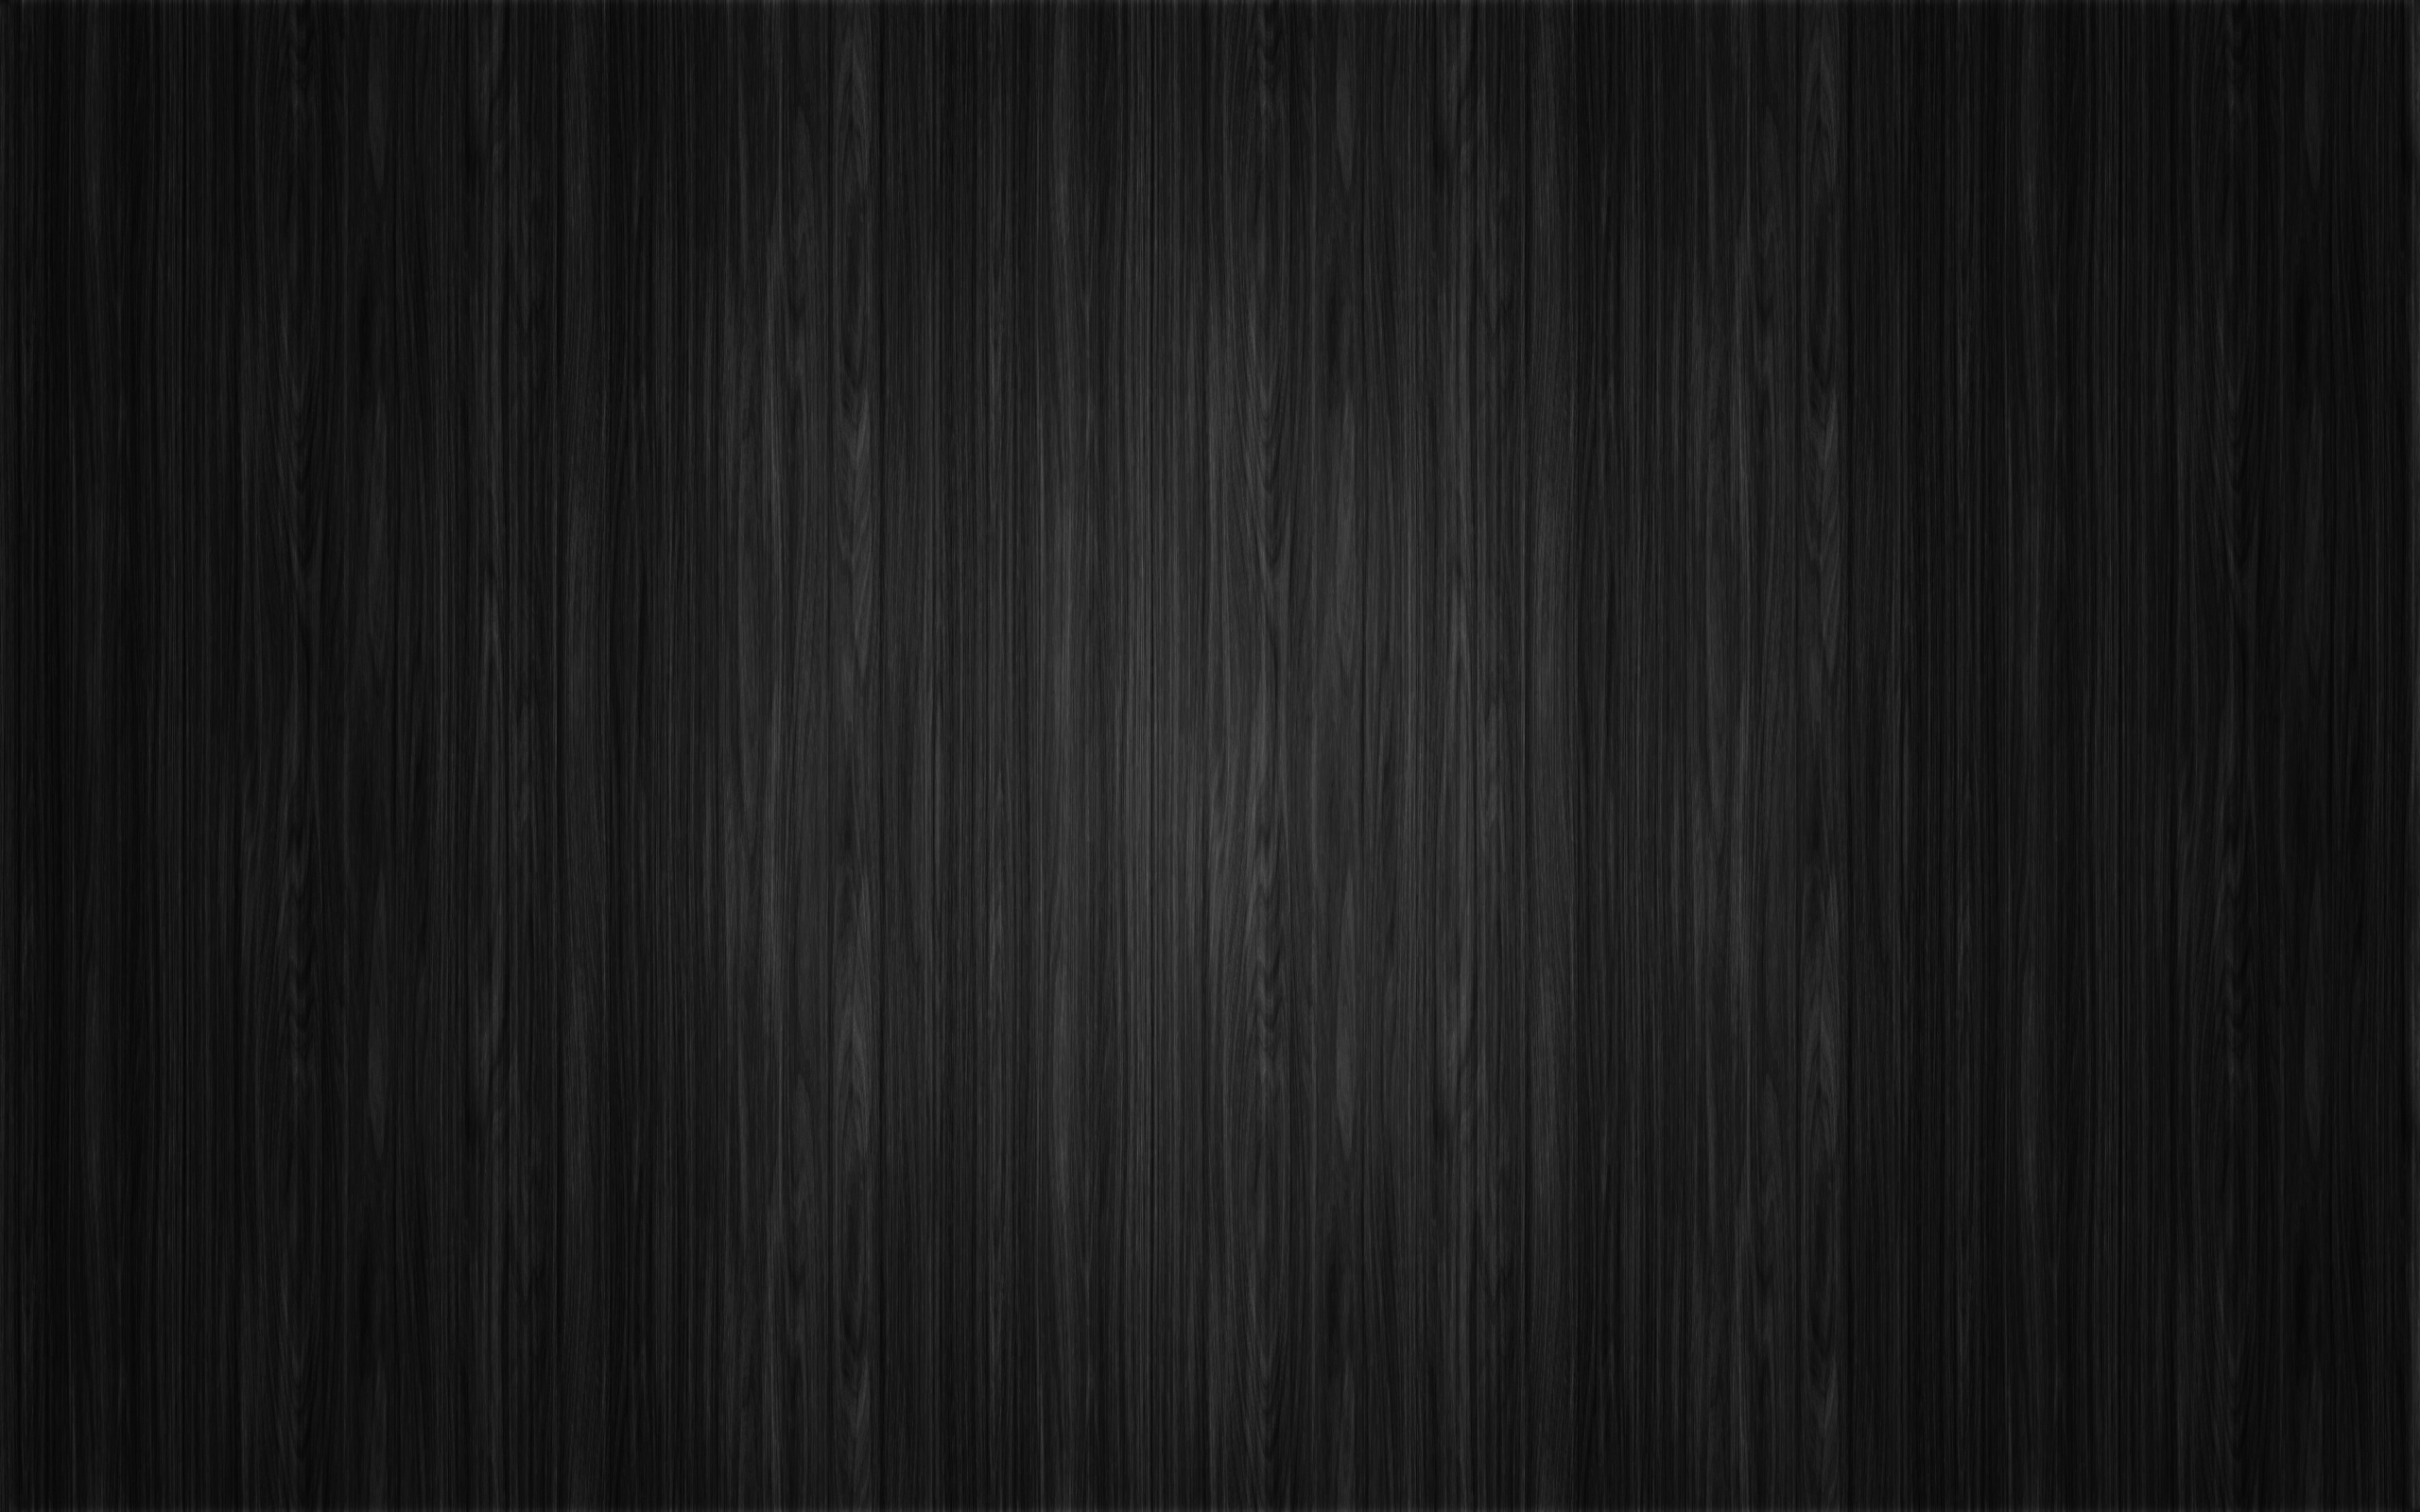 2009 wallpaper: background black abstract